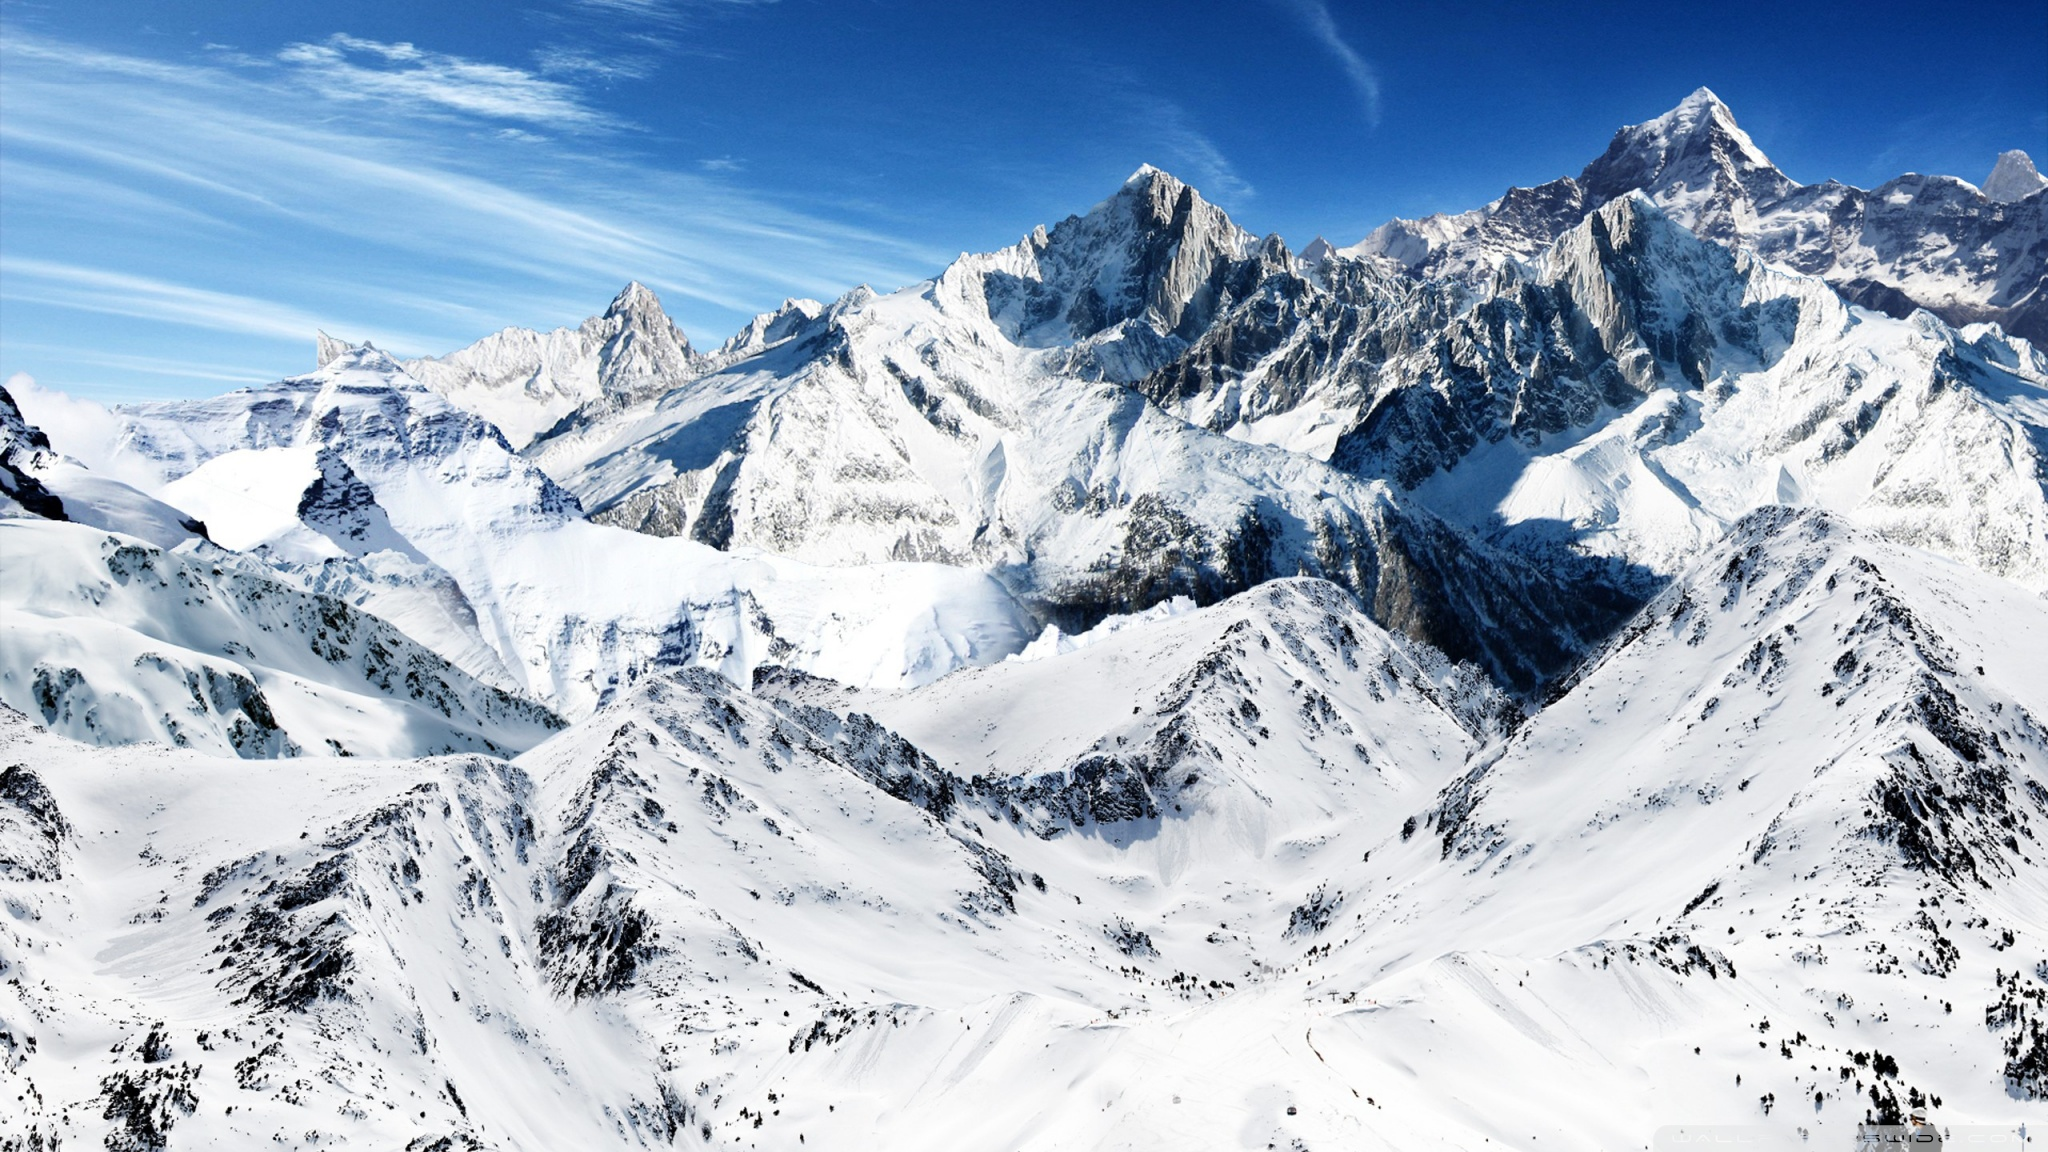 Snowy Mountains Wallpaper